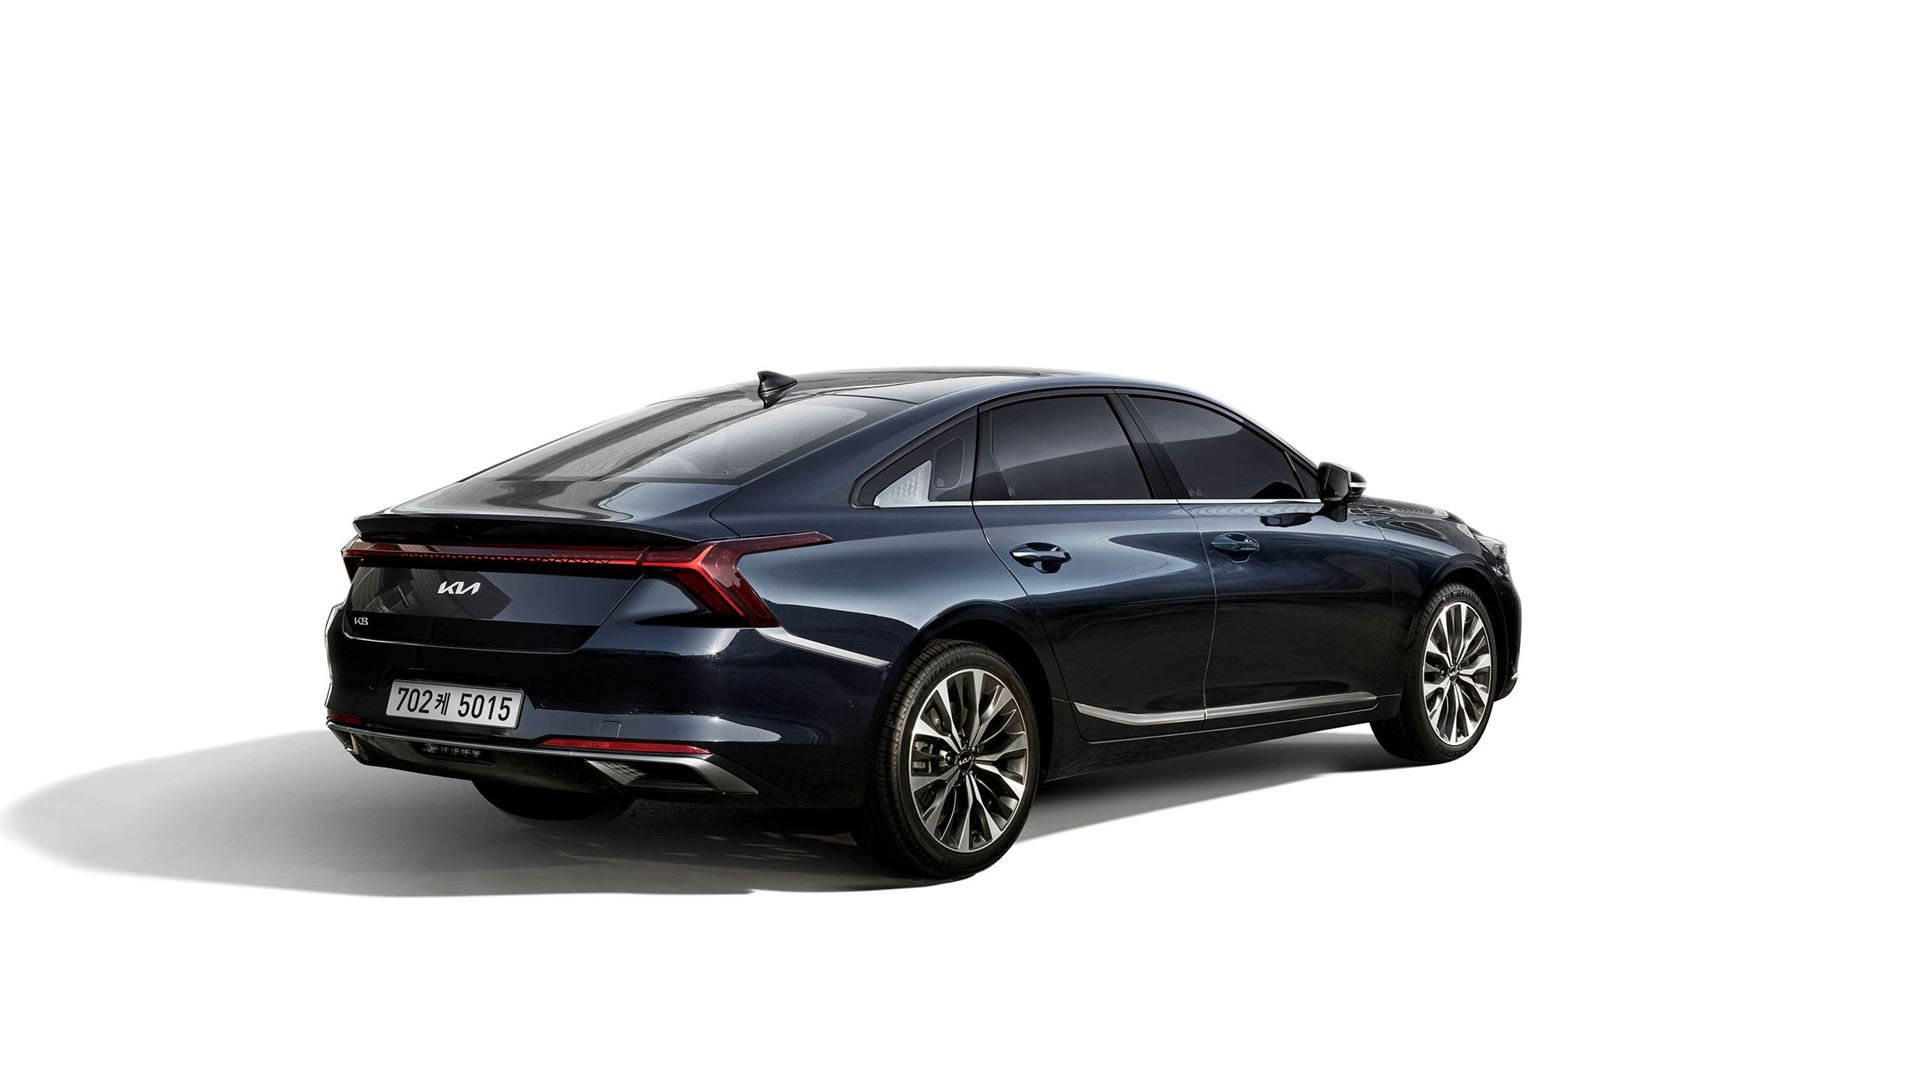 The high-tech Kia K8 reimagines and transforms the sedan class - Image 4